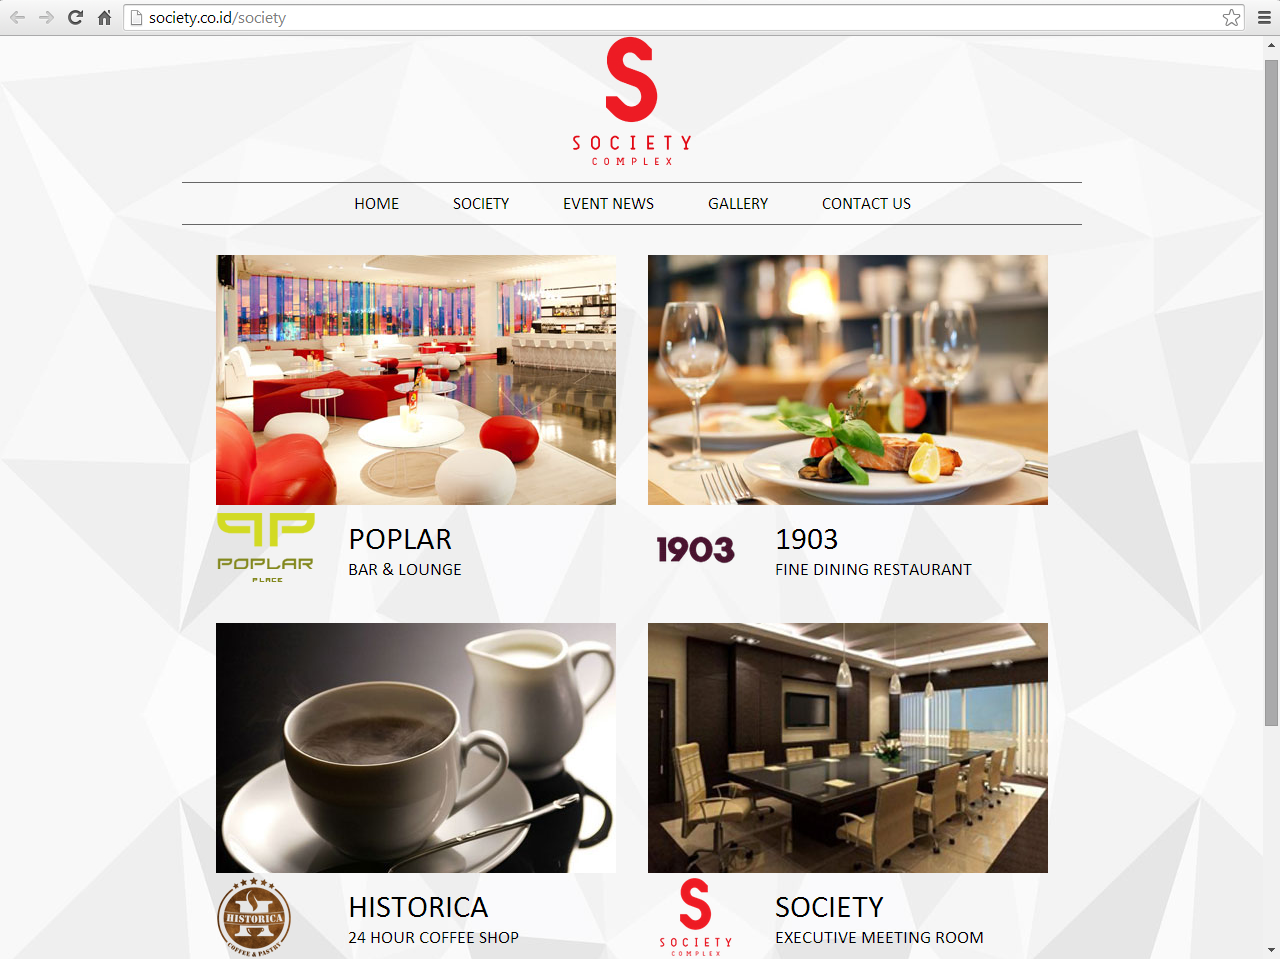 Society Complex's Website